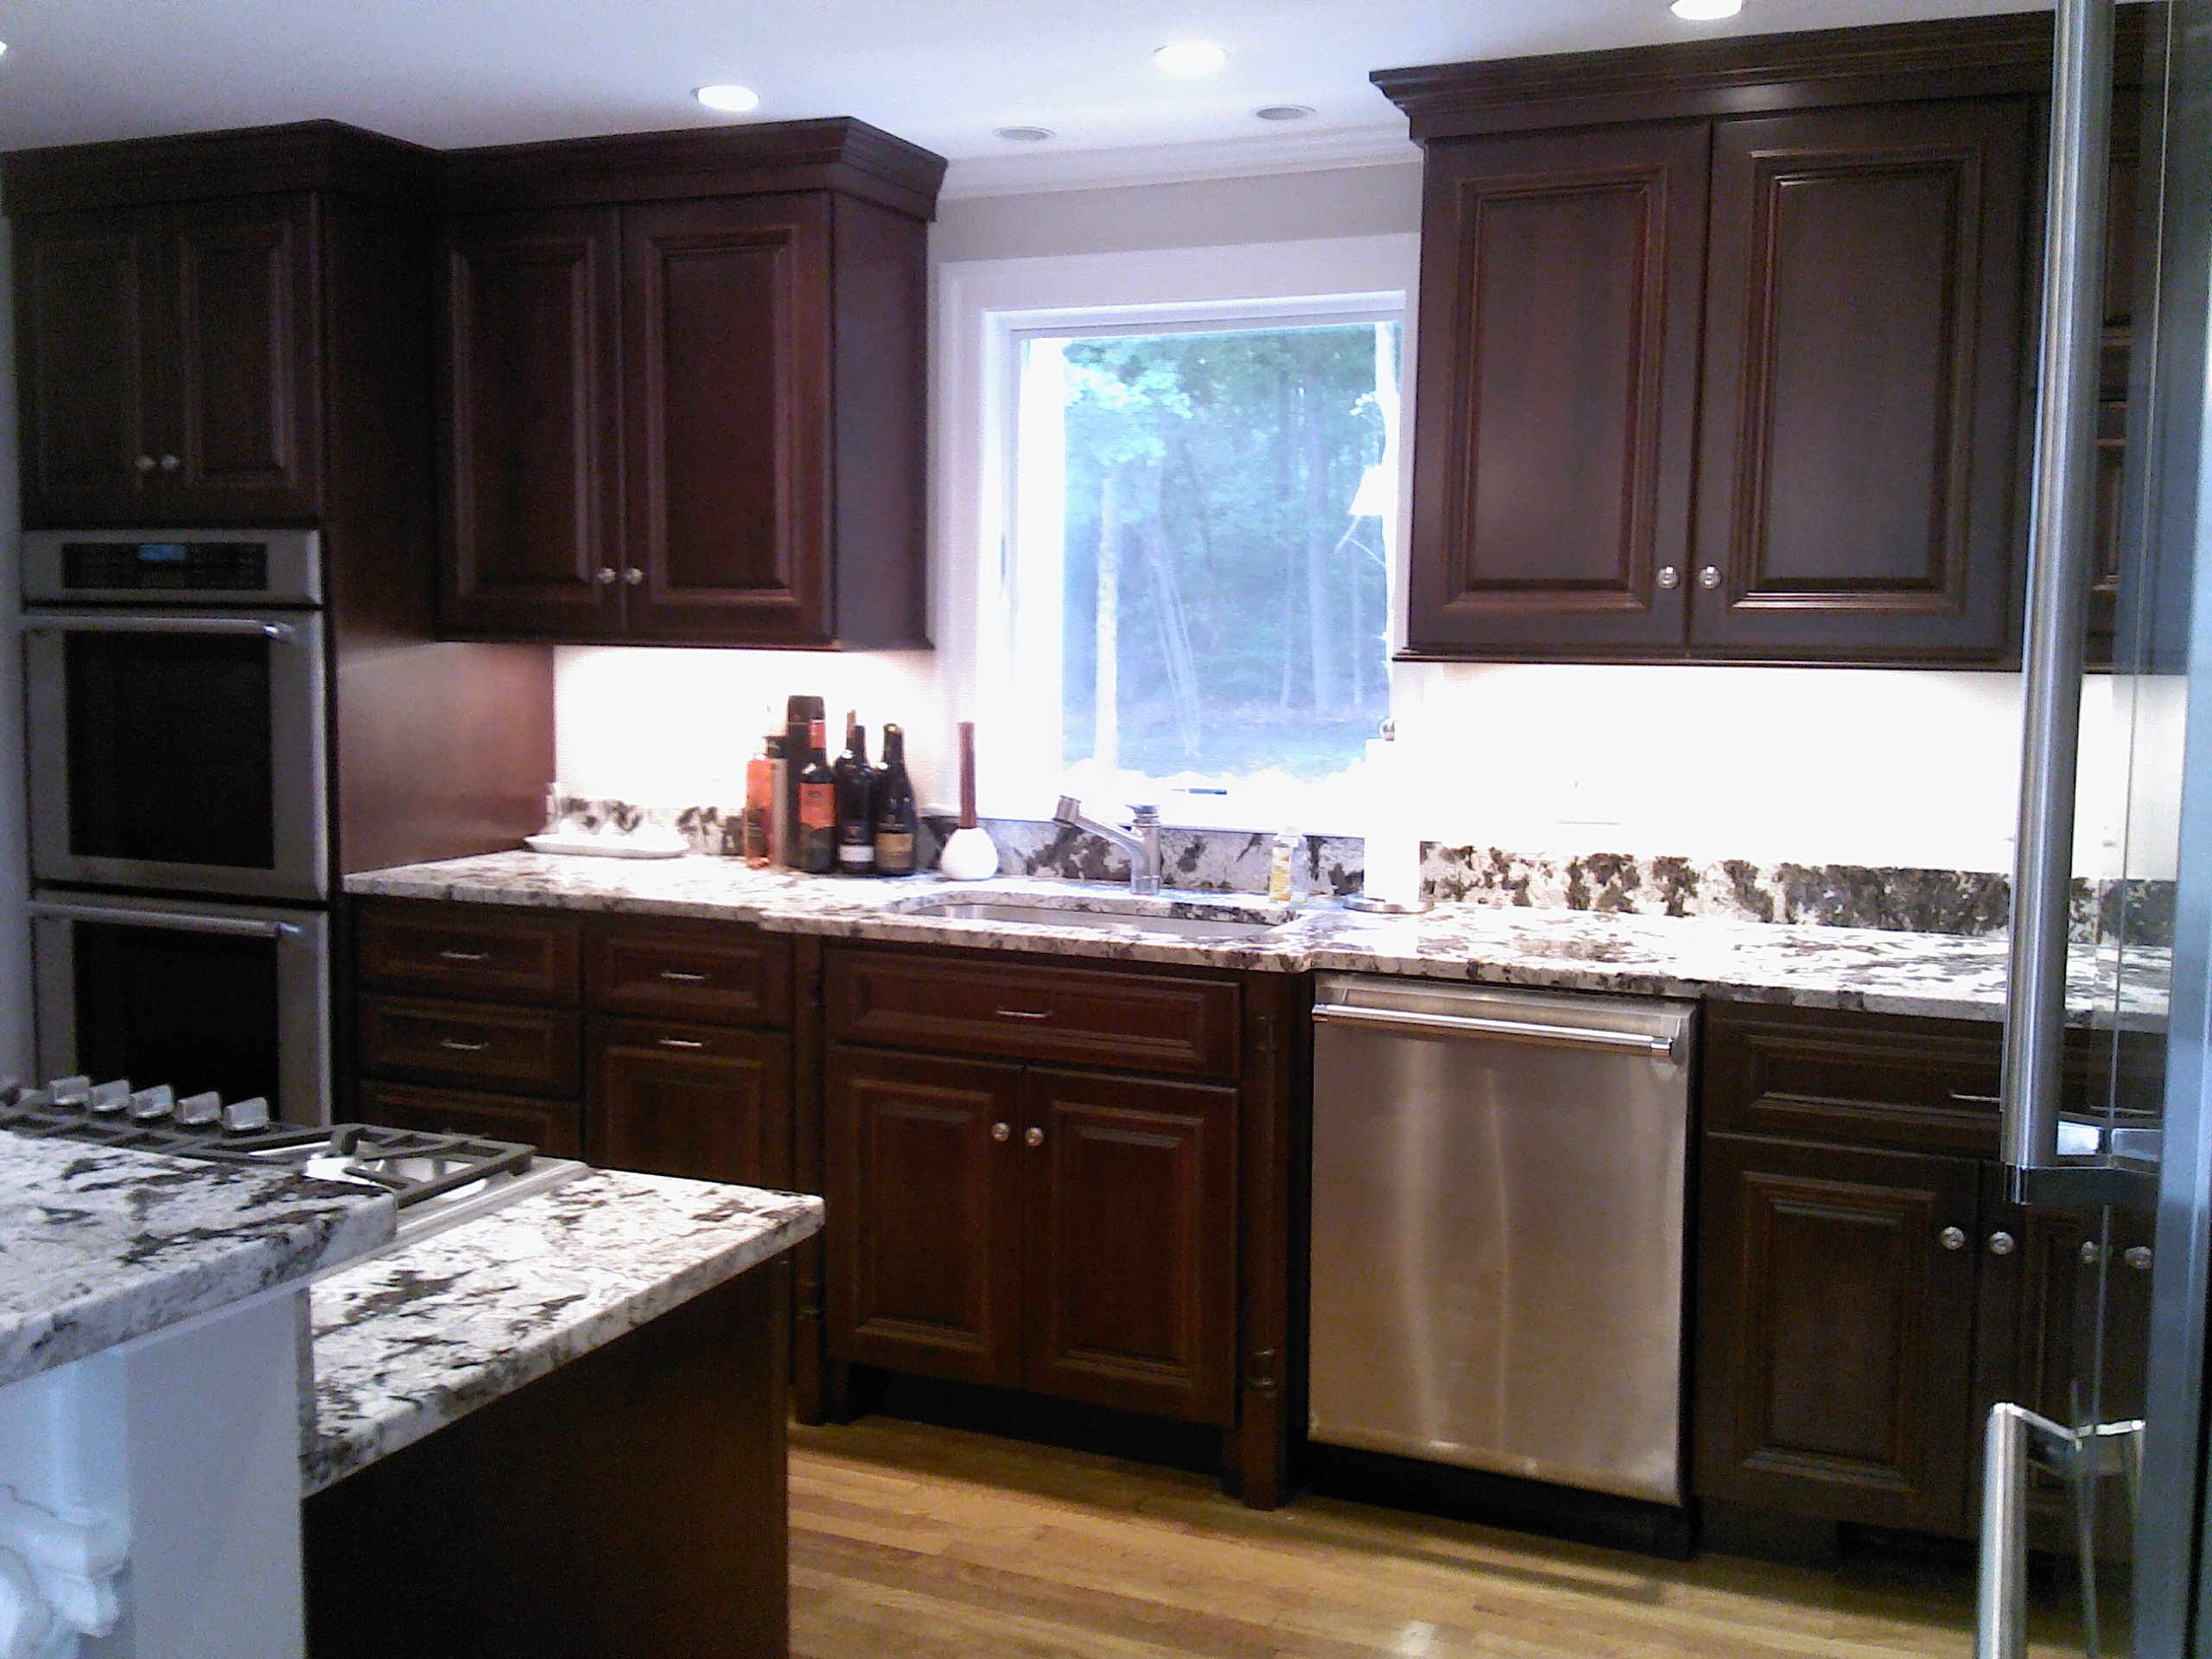 mahogany kitchen cabinets decorative ceramic tiles remodel before and after 7